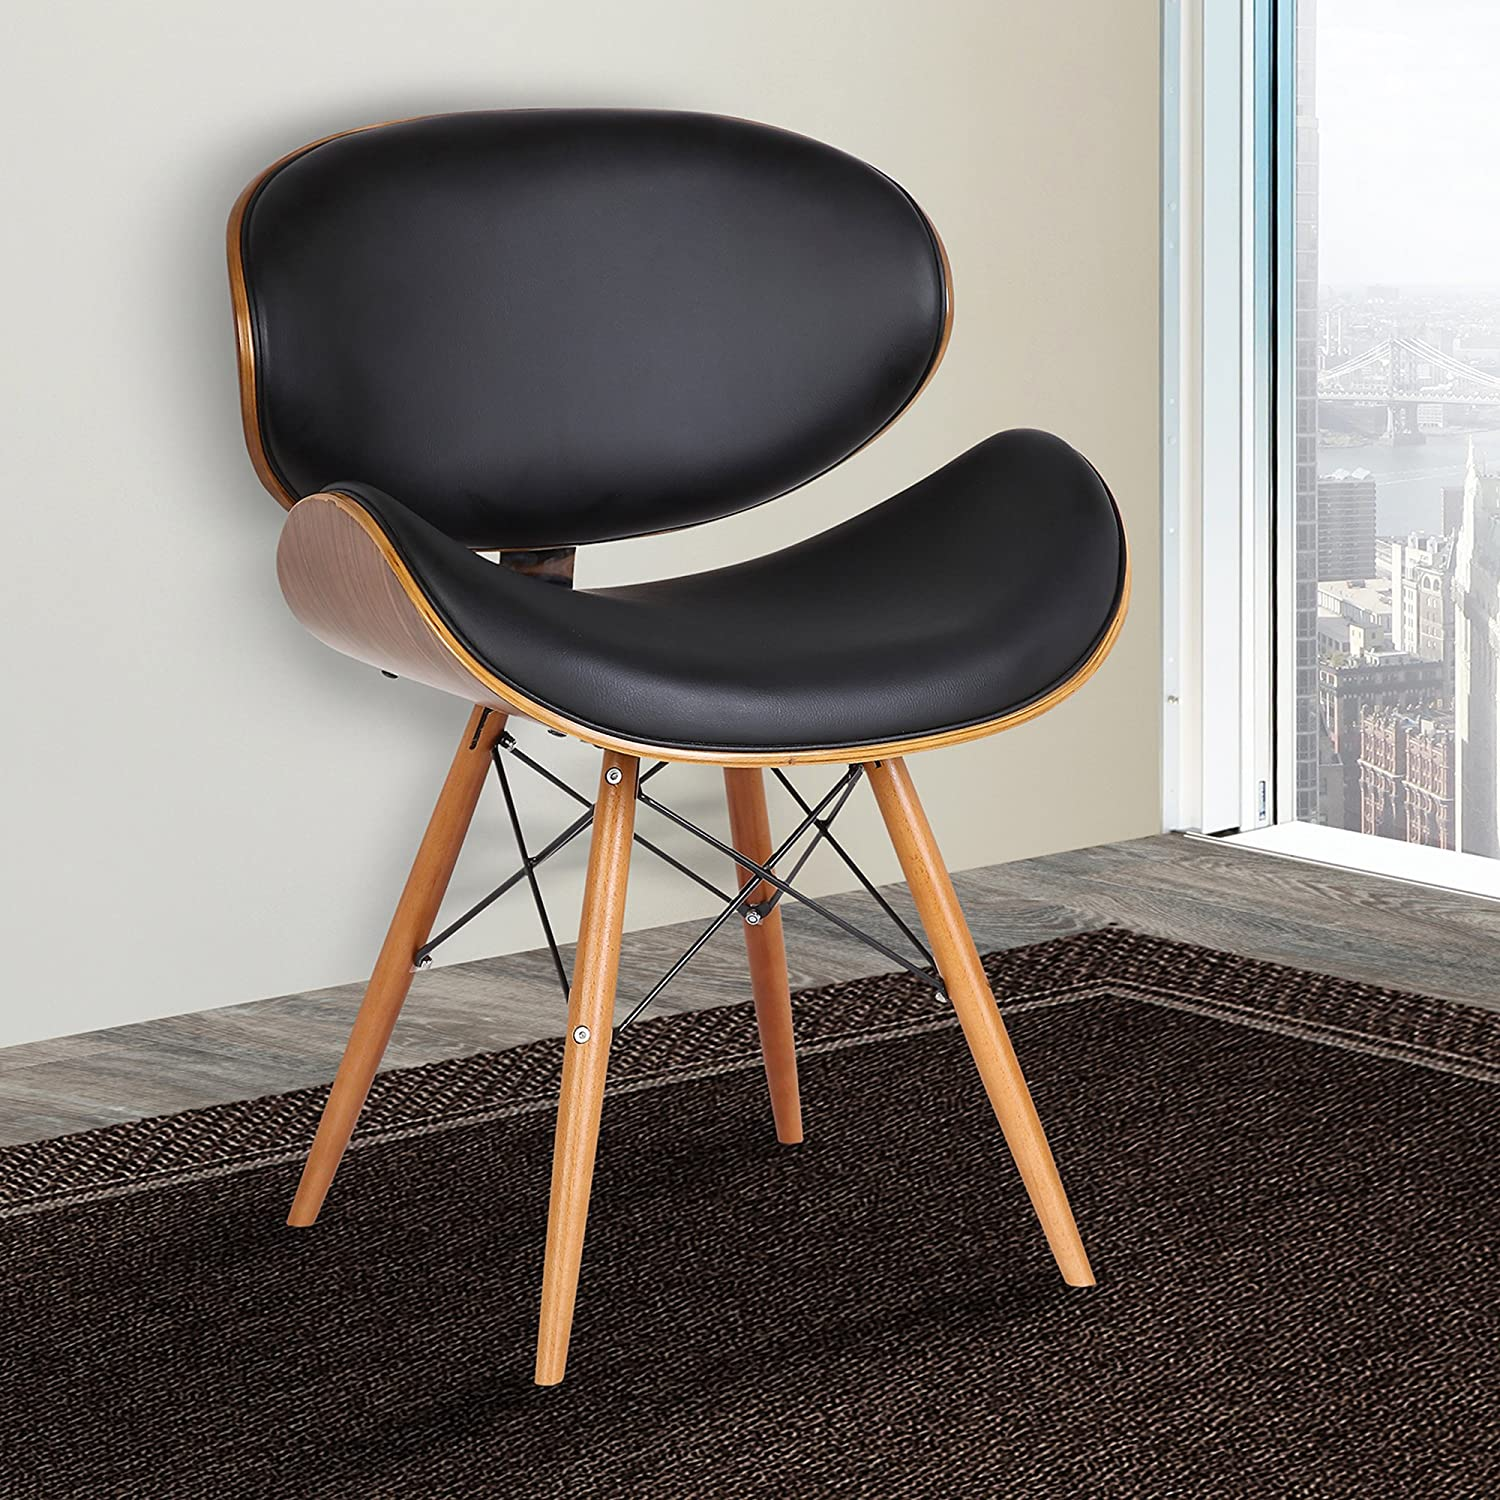 Armen LivingCassie Dining Chair in Black Faux Leather and Walnut Wood Finish